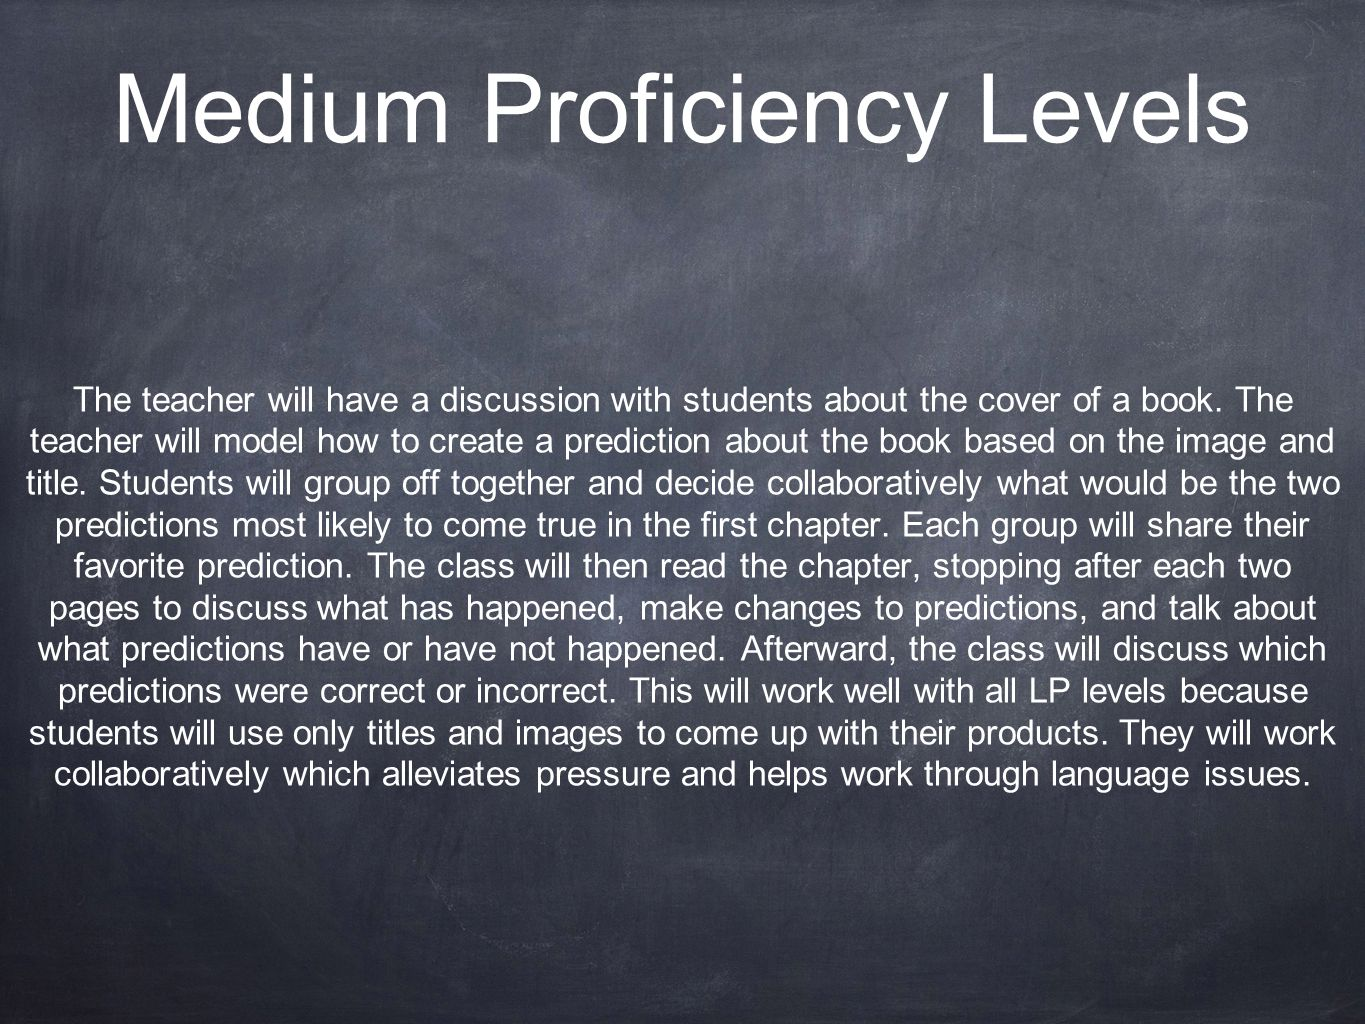 Medium Proficiency Levels